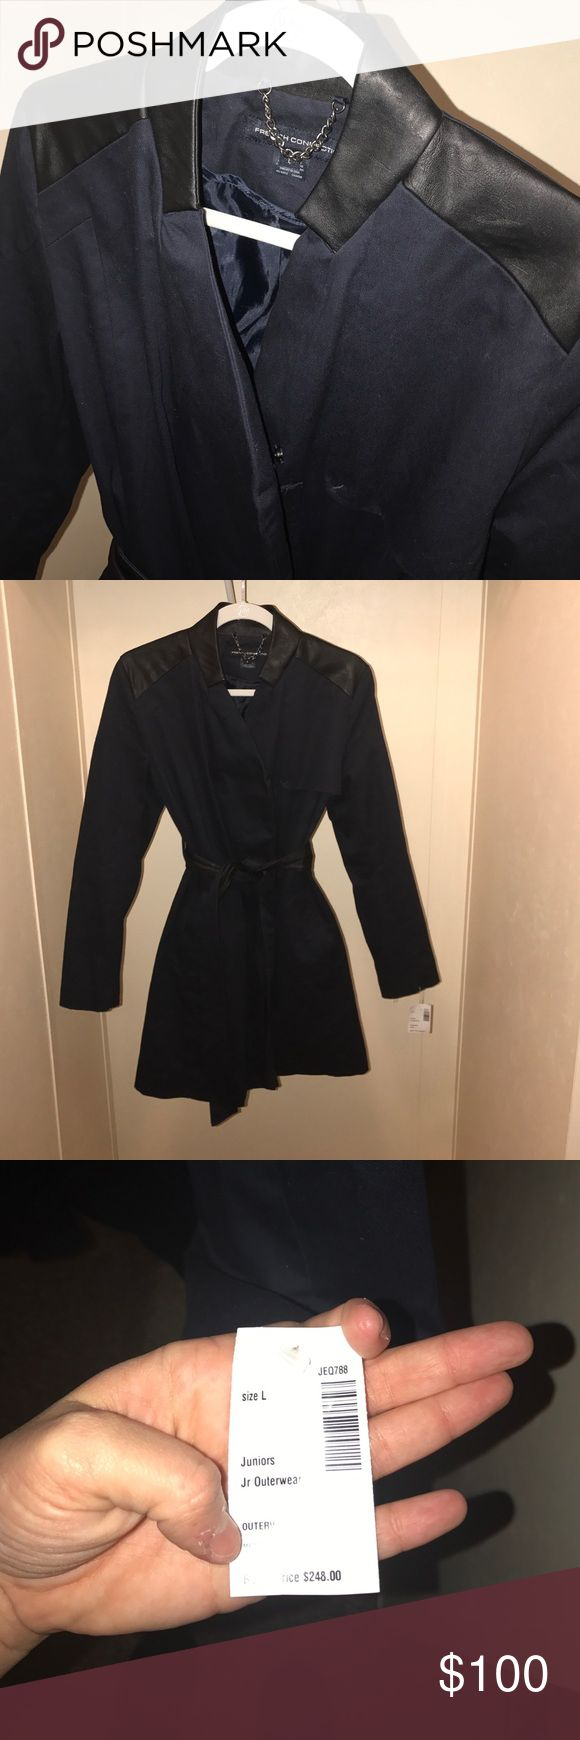 French Connection Trench Coat This is a brand new with tags attached navy and black French connection trench coat that is knee length the coat is navy with black fax leather detailing and black lining this is a rare find for the price get it while it's still here French Connection Jackets & Coats Trench Coats